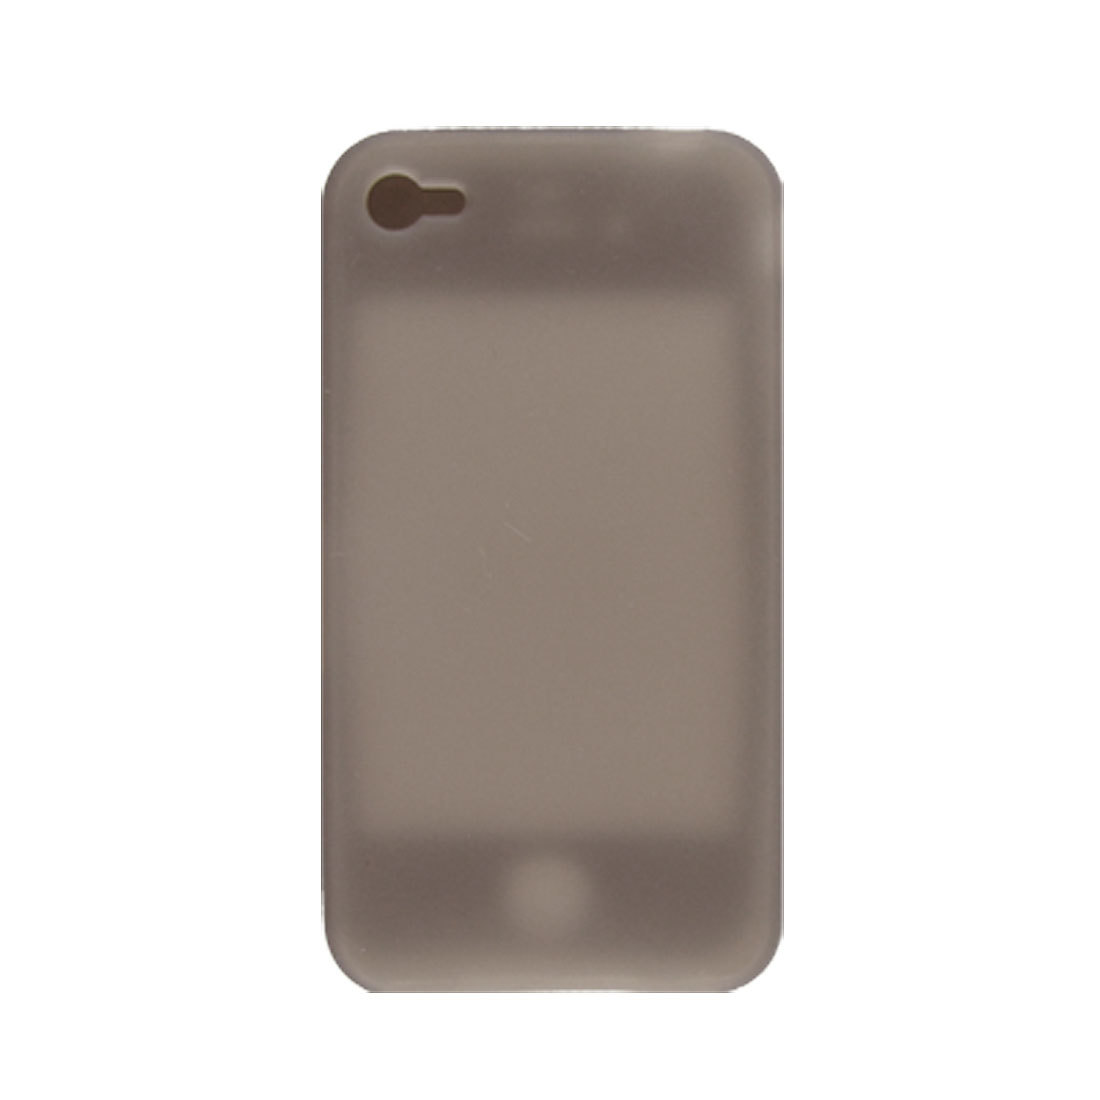 Soft Silicone Button Hole Design Case for iPhone 4 4G Clear Gray